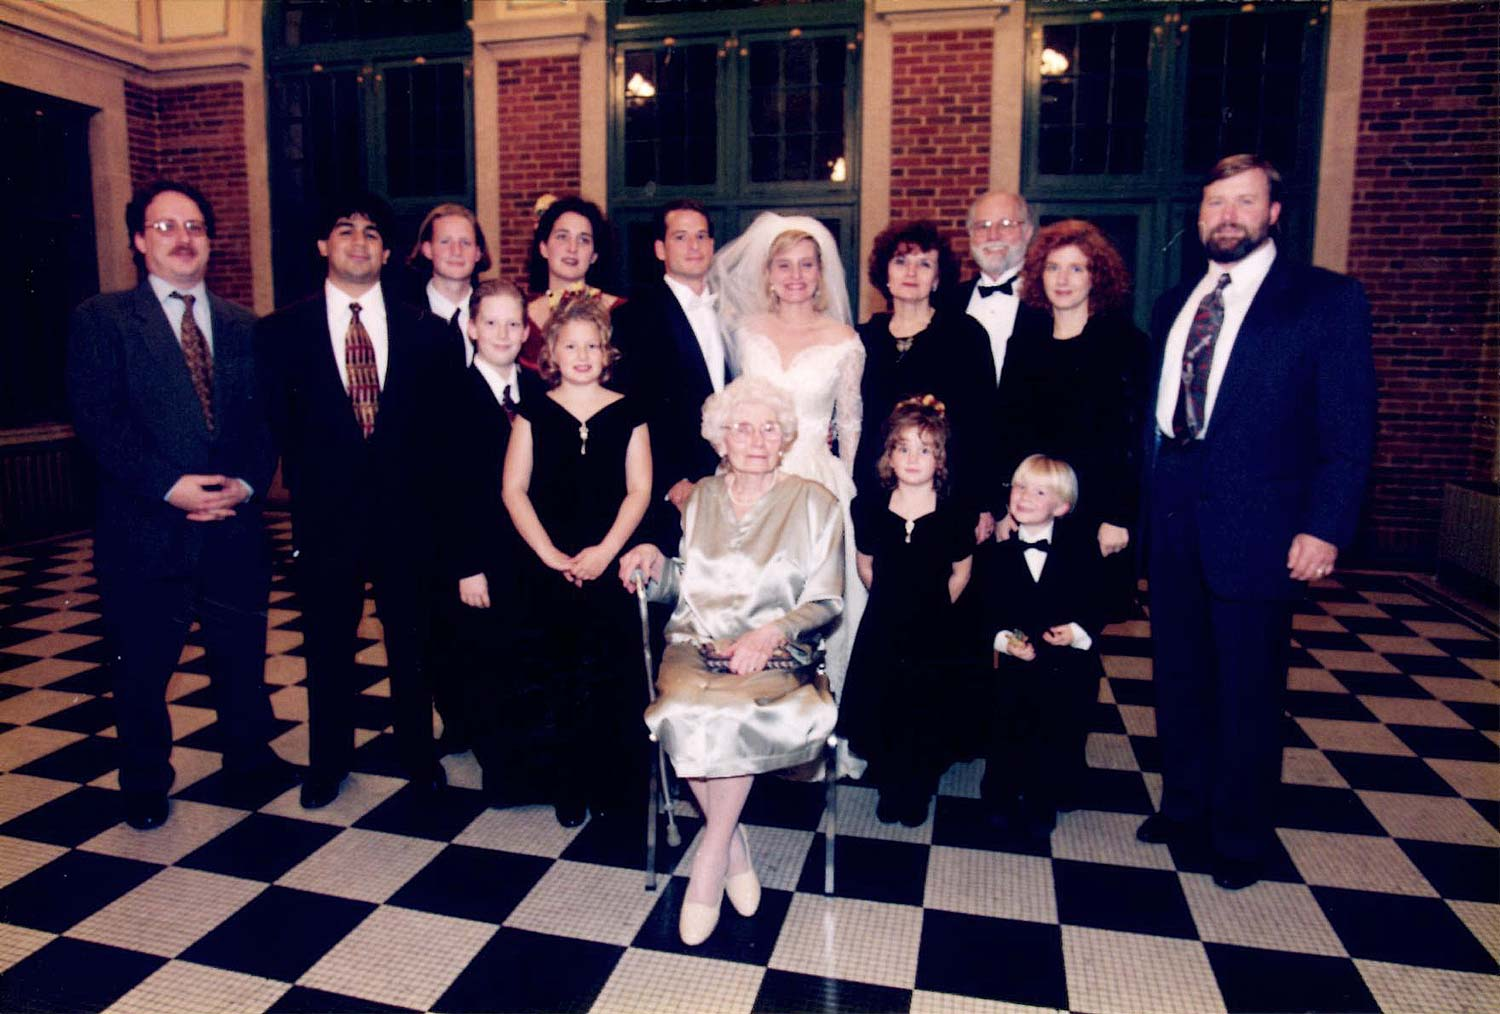 In this family photograph from my wedding, my grandmother, Piri Neumann, is seated in the front, 1996.